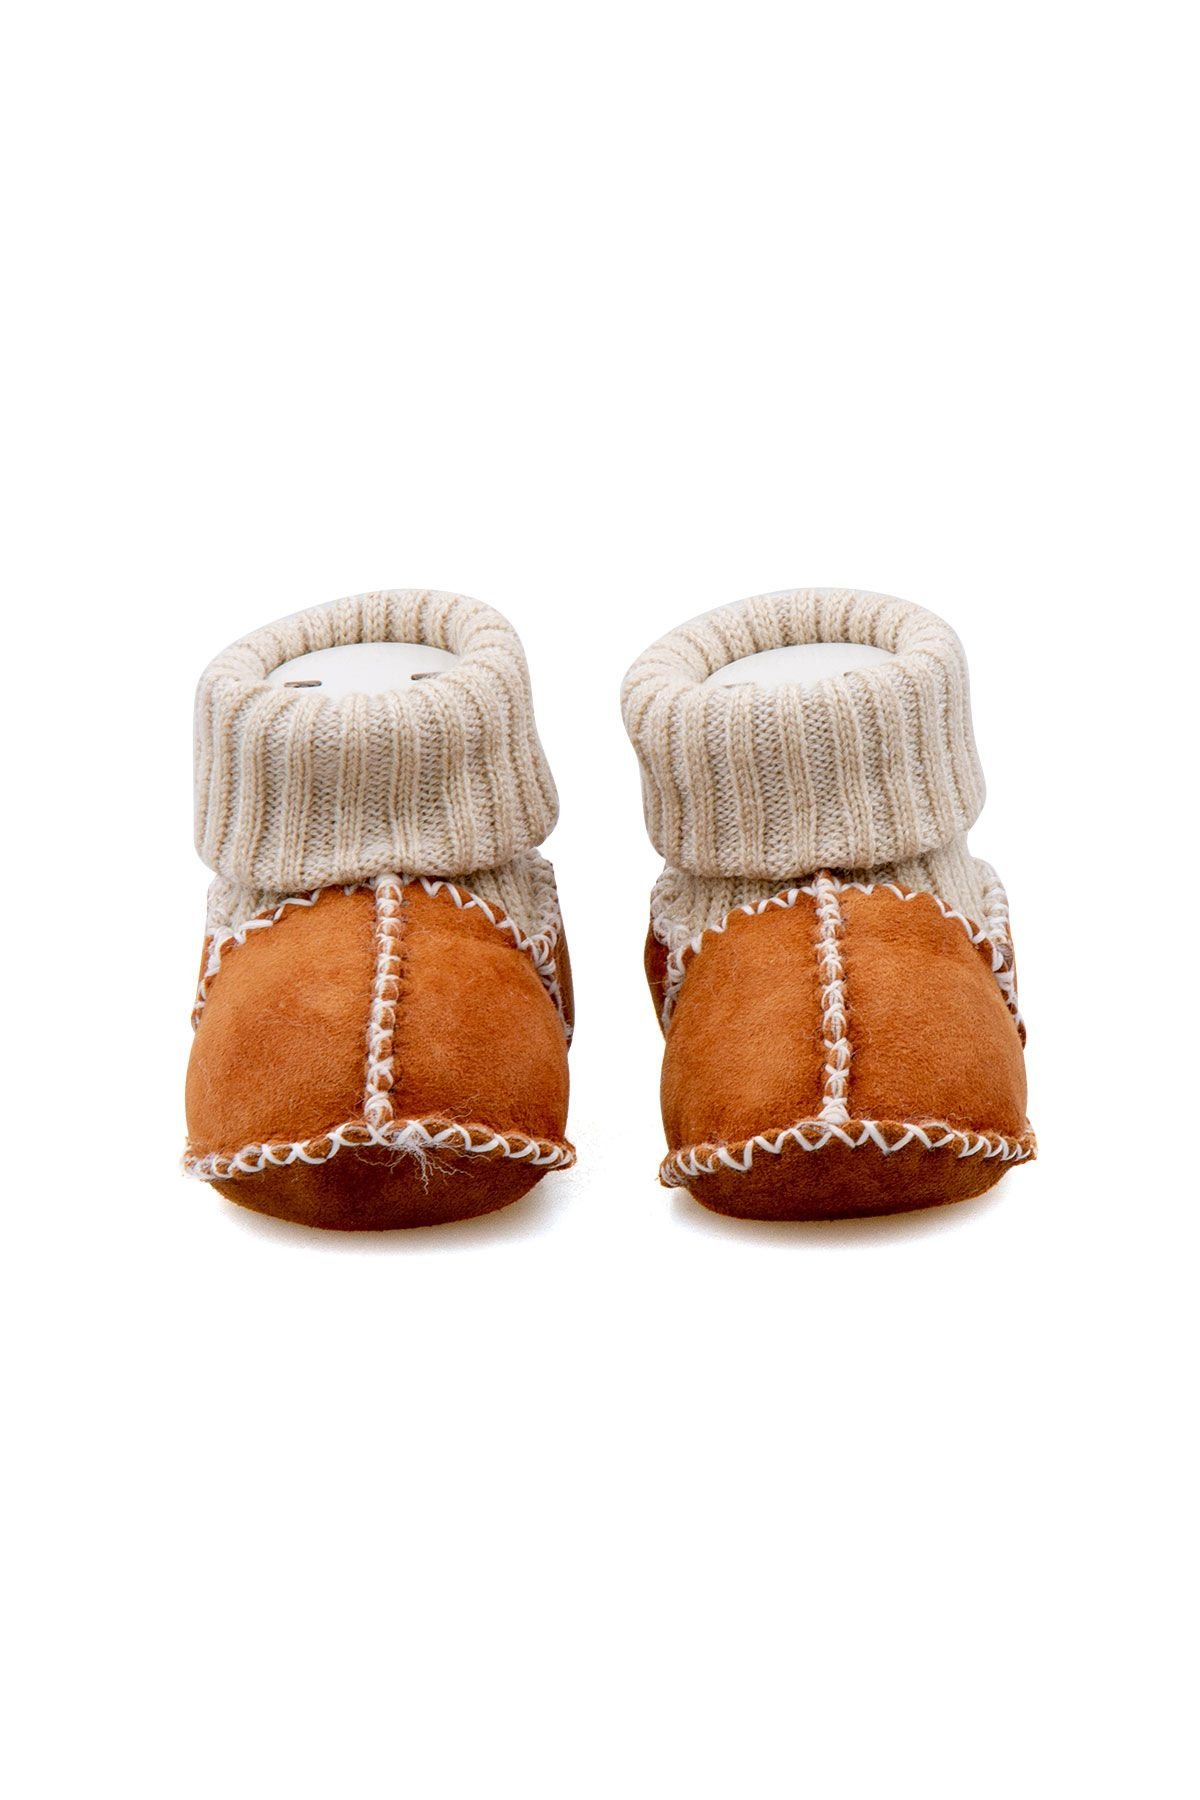 Pegia Shearling Baby's Booties With Socks 141107 Ginger